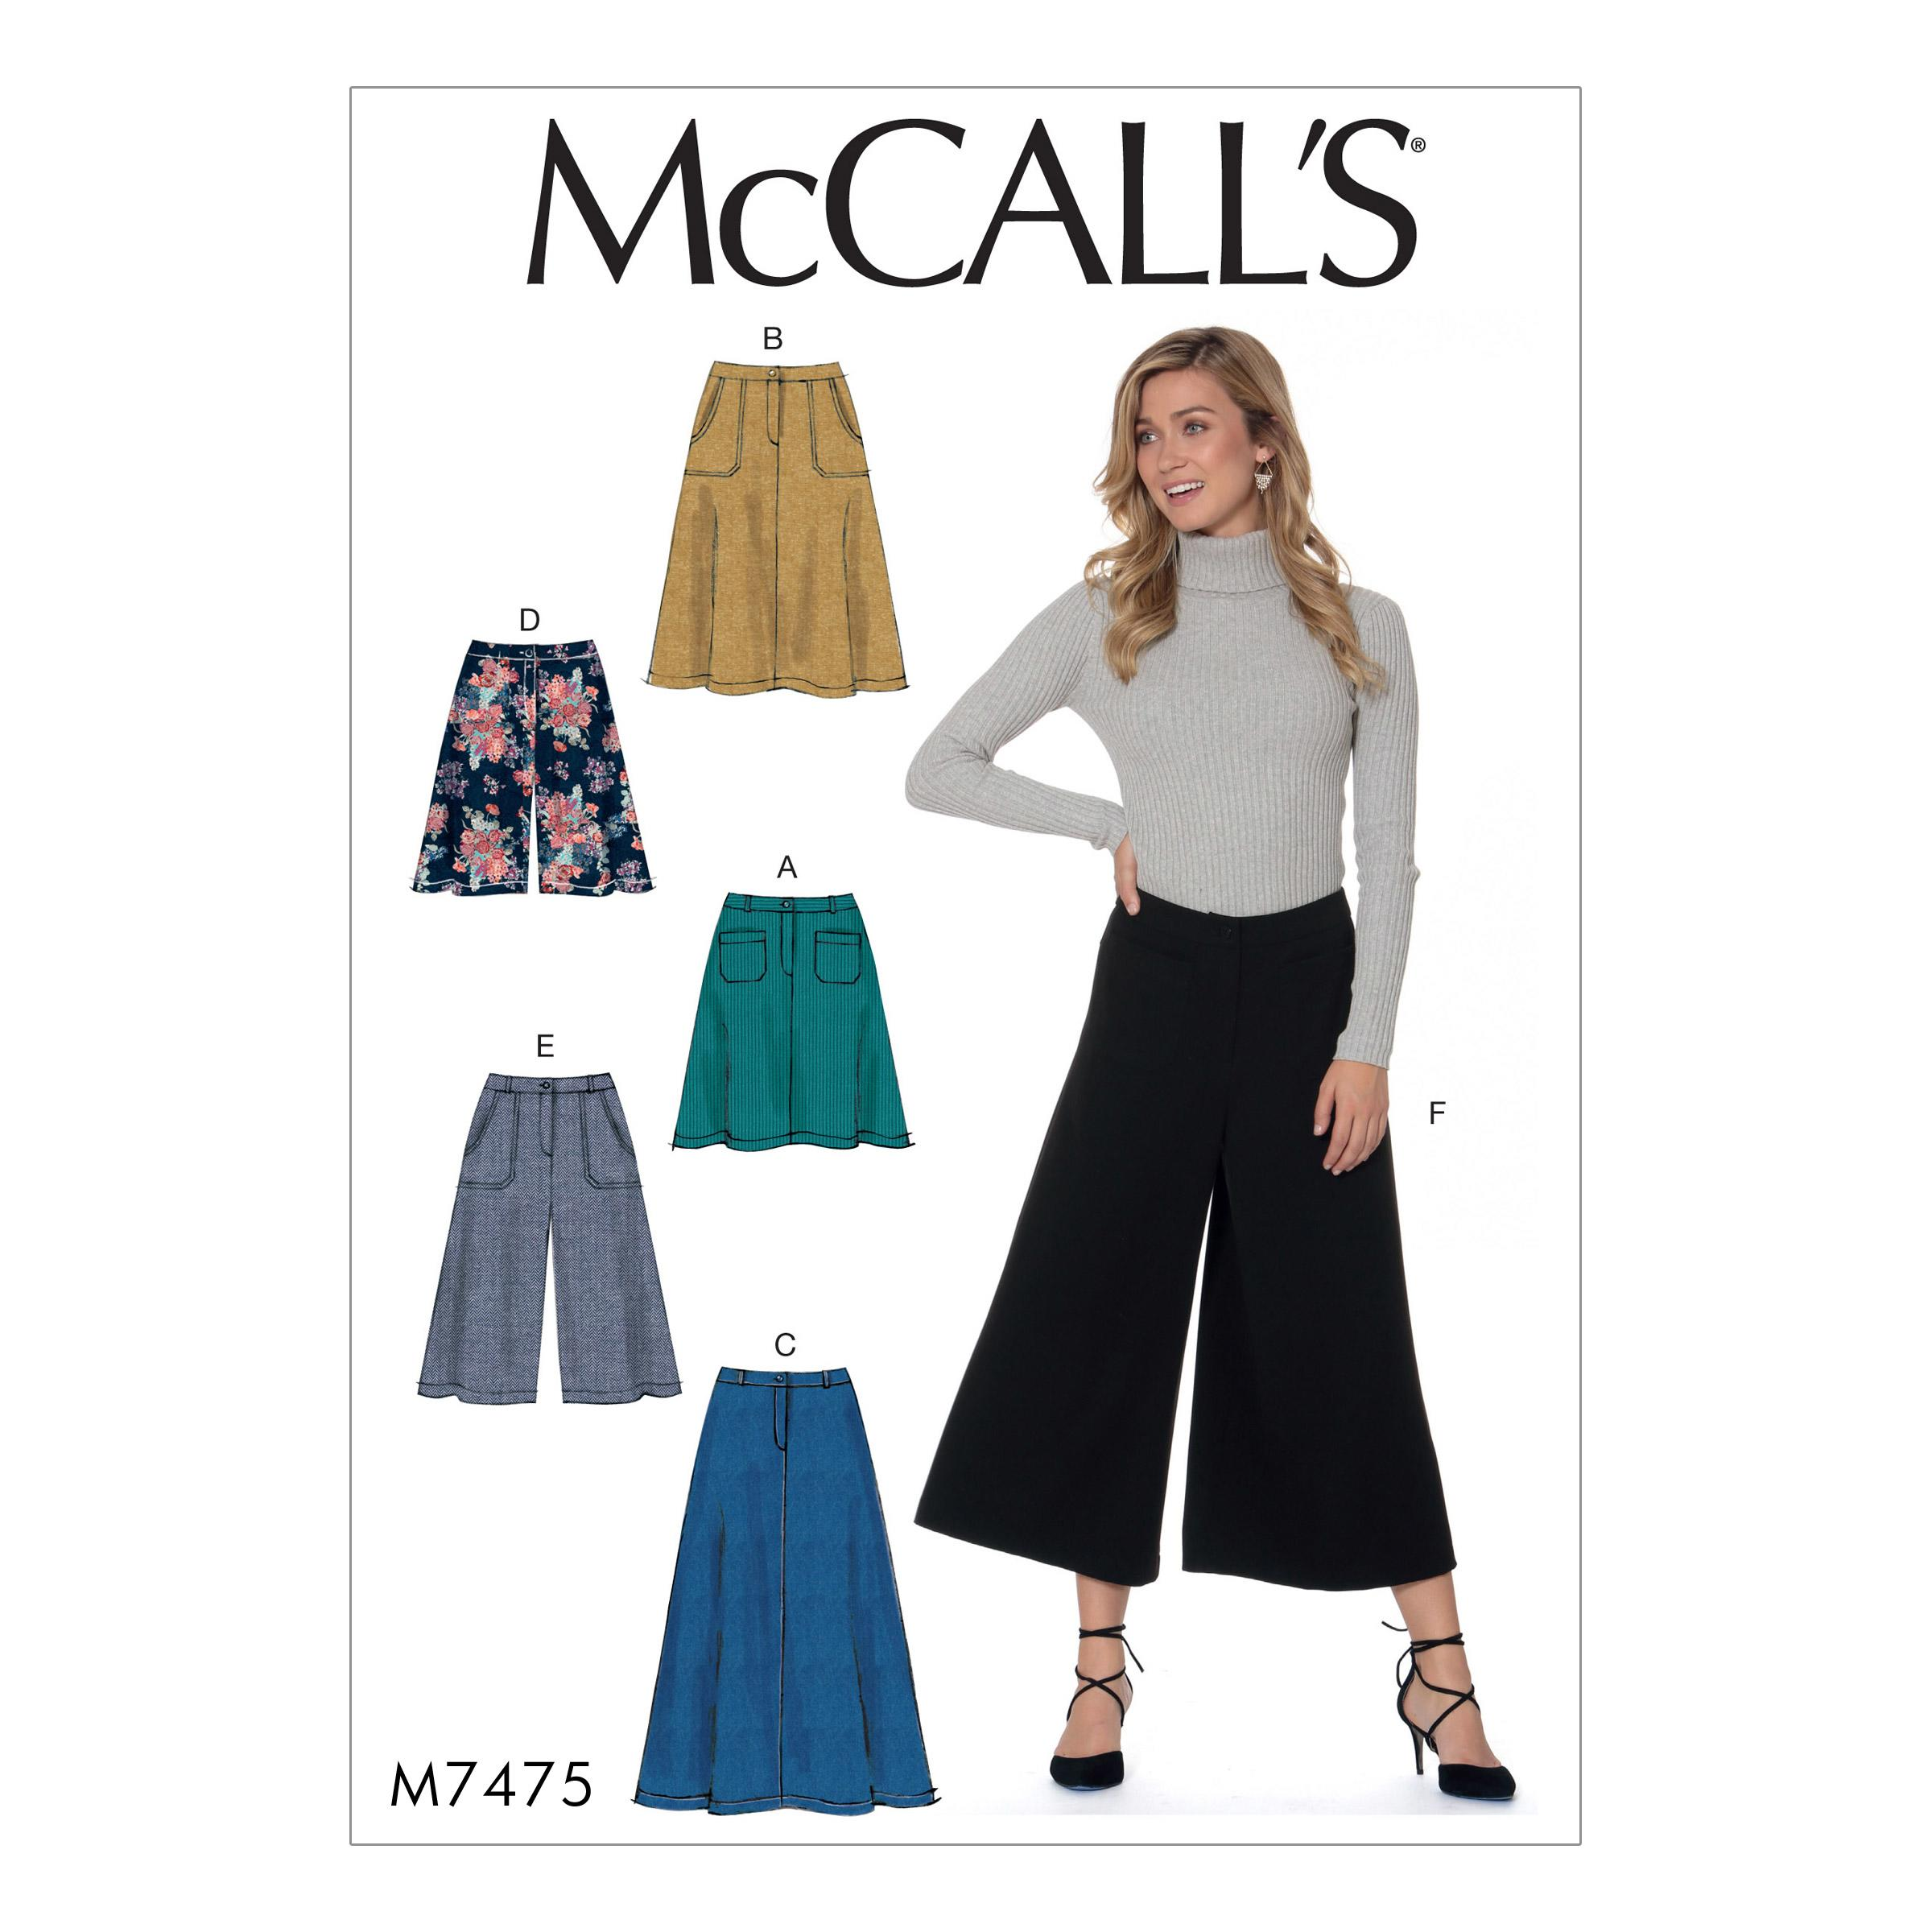 McCalls M7475 Misses Skirts, Misses Pants, Jumpsuits & Shorts